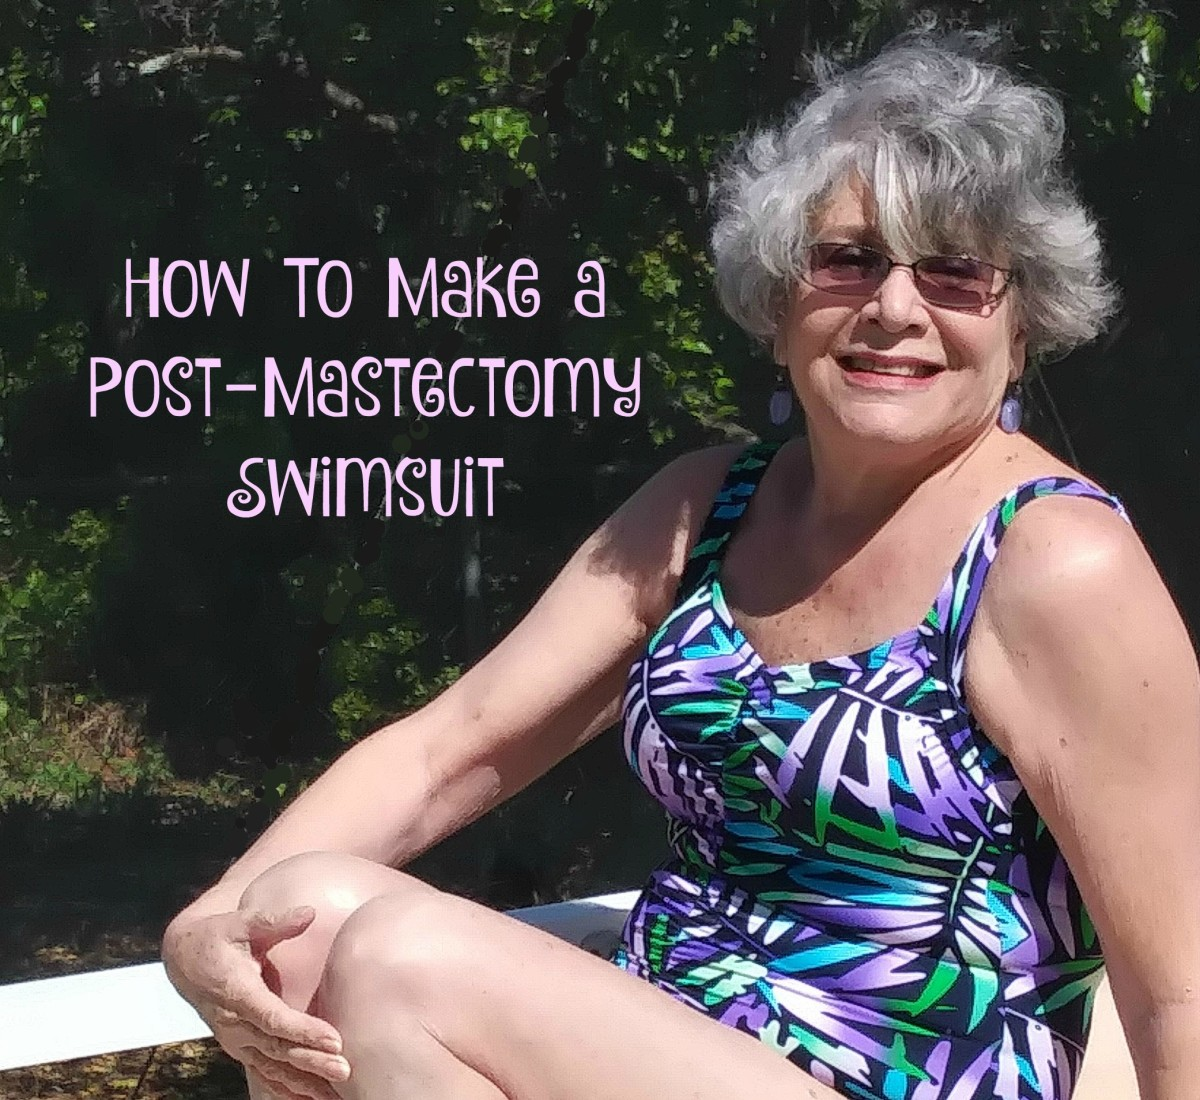 How to Make an Easy and Inexpensive Post-Mastectomy Swimsuit